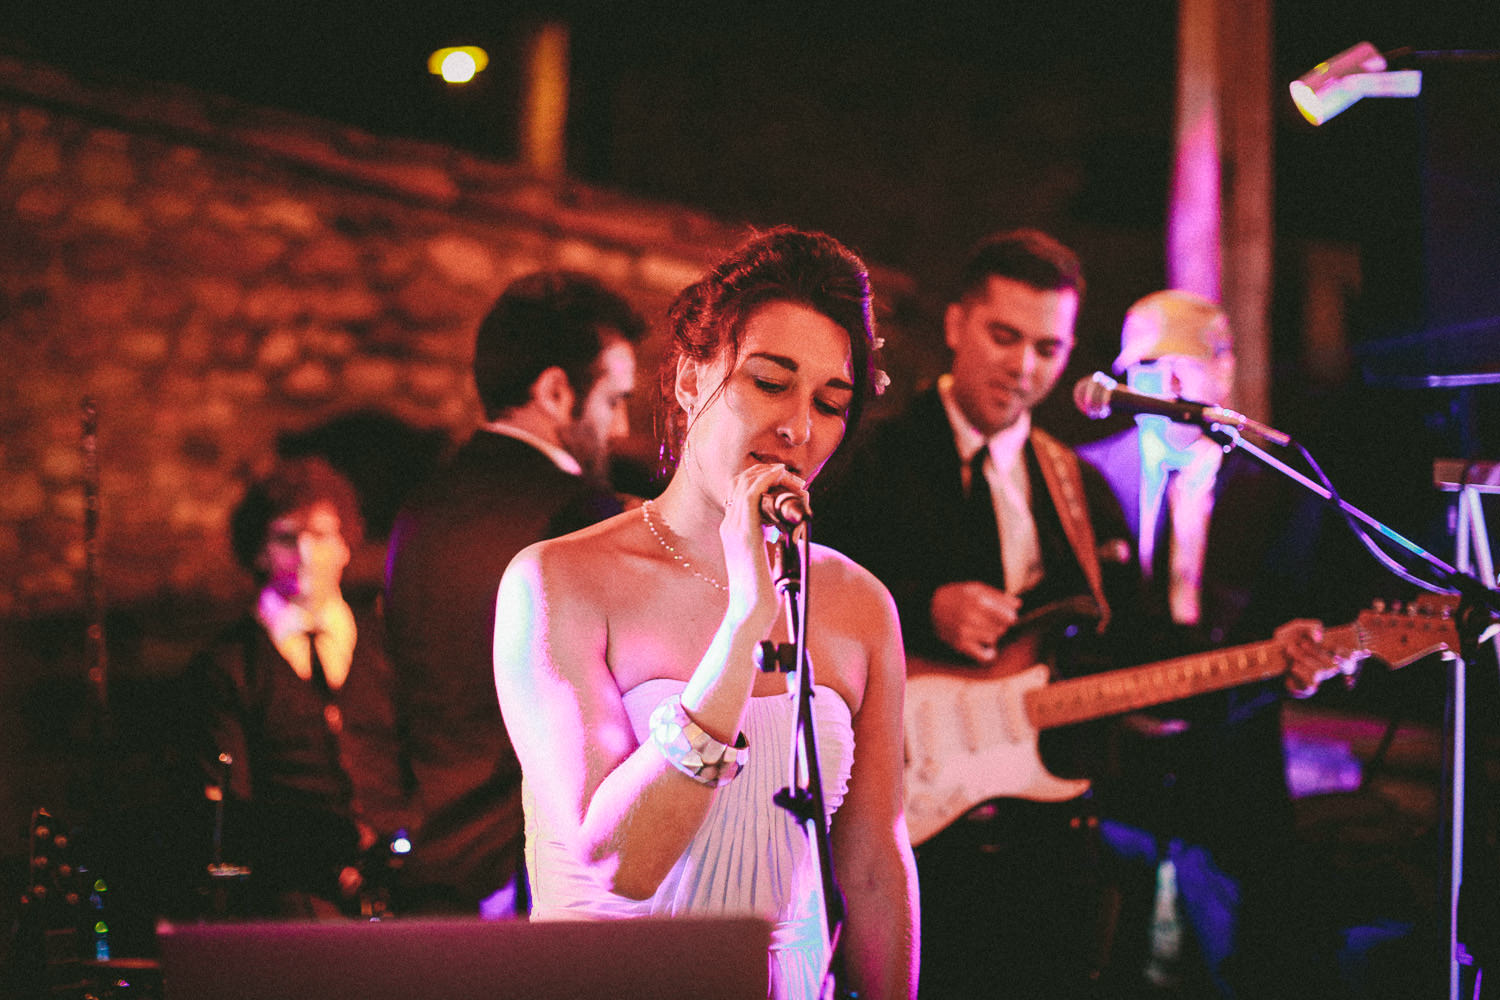 lady singing at party Fattoria la loggia Tuscany wedding